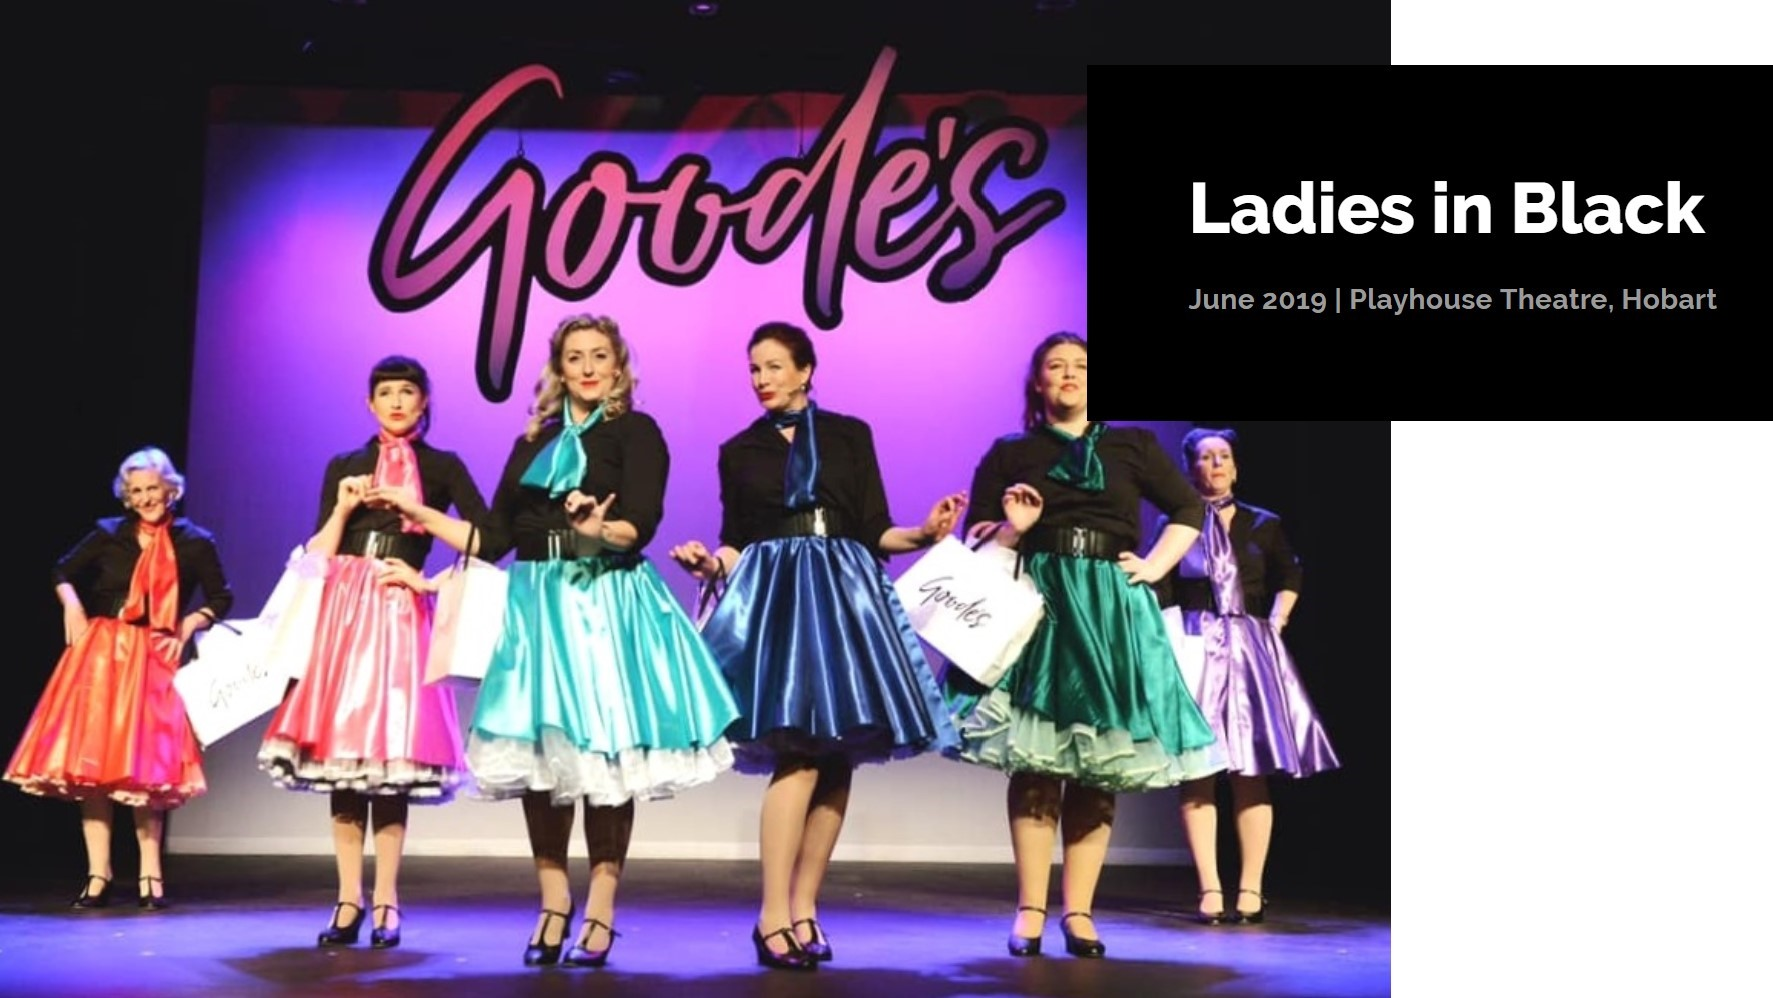 2019 has already seen two fantastic Bijou productions with successful seasons of Ladies in Black and Carrie, the Musical.